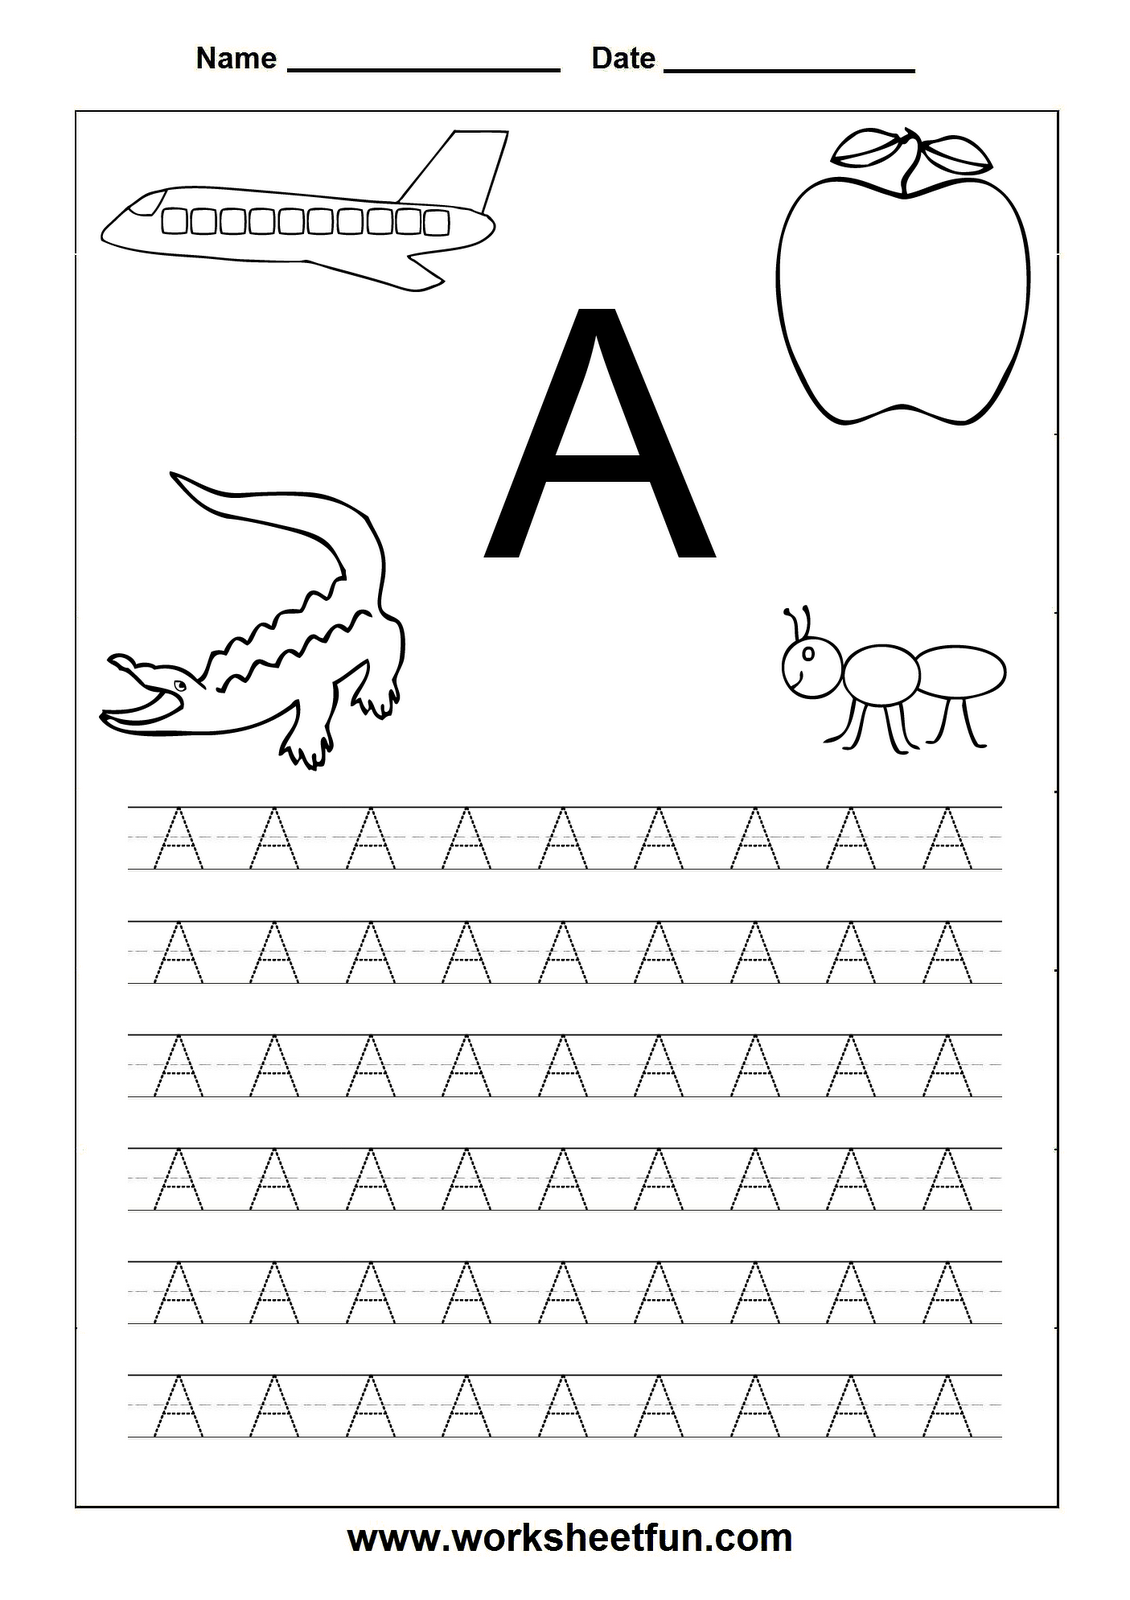 Printables Free Alphabet Worksheets For Kindergarten free printable alphabet worksheets davezan on pinterest worksheets